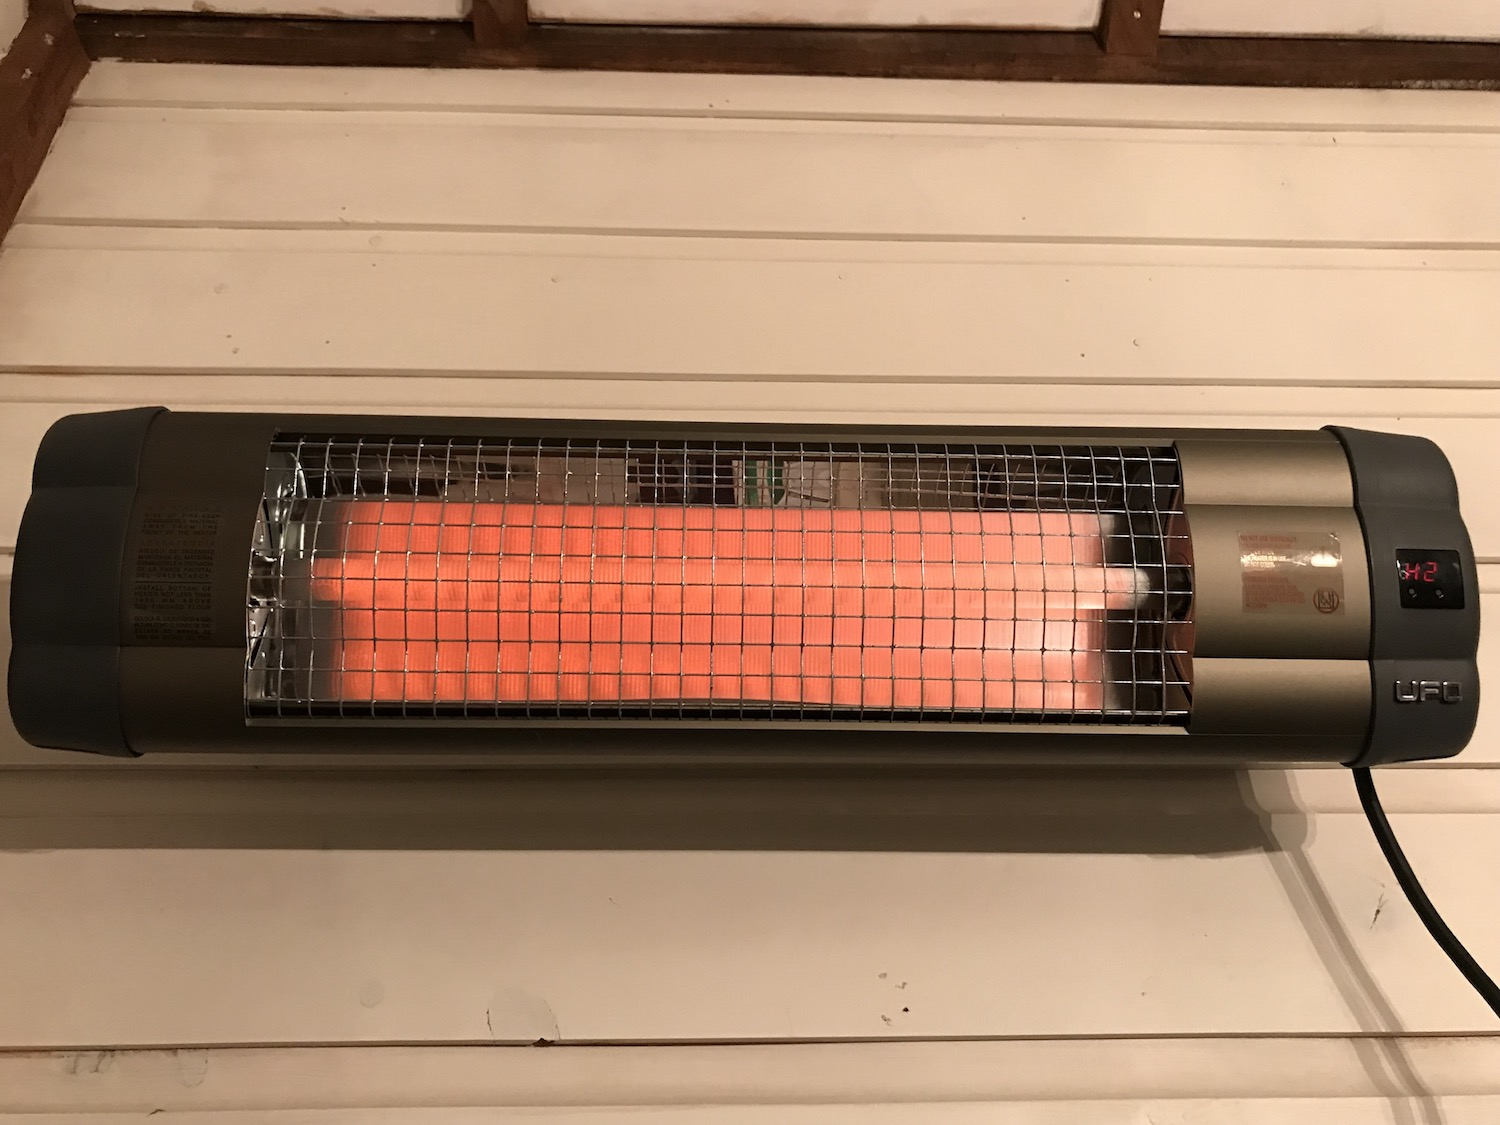 UFO Electric Infrared Heating